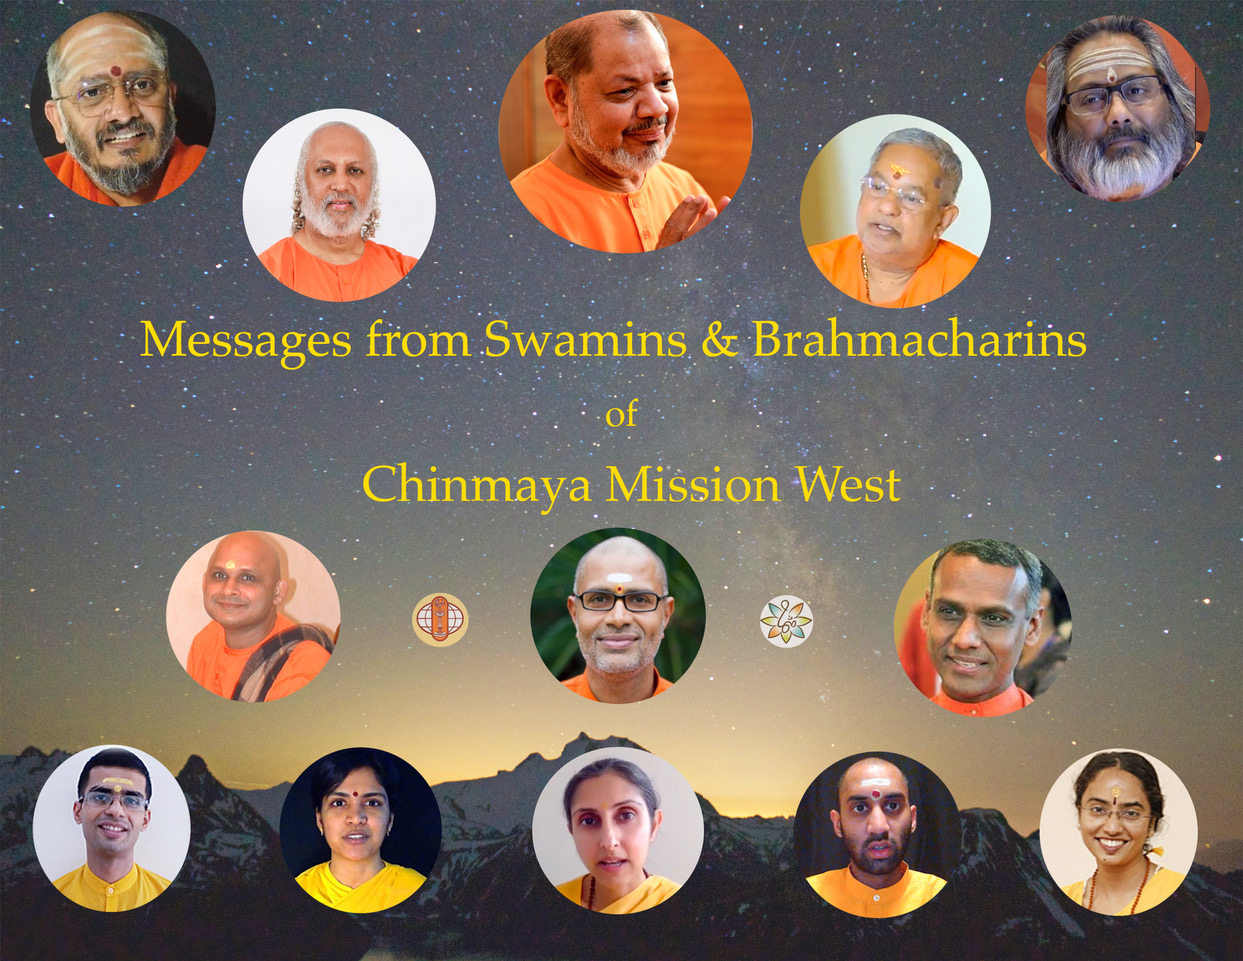 http://chinmayamissionwest.com/video-messages-from-swamins-and-brahamacharins/